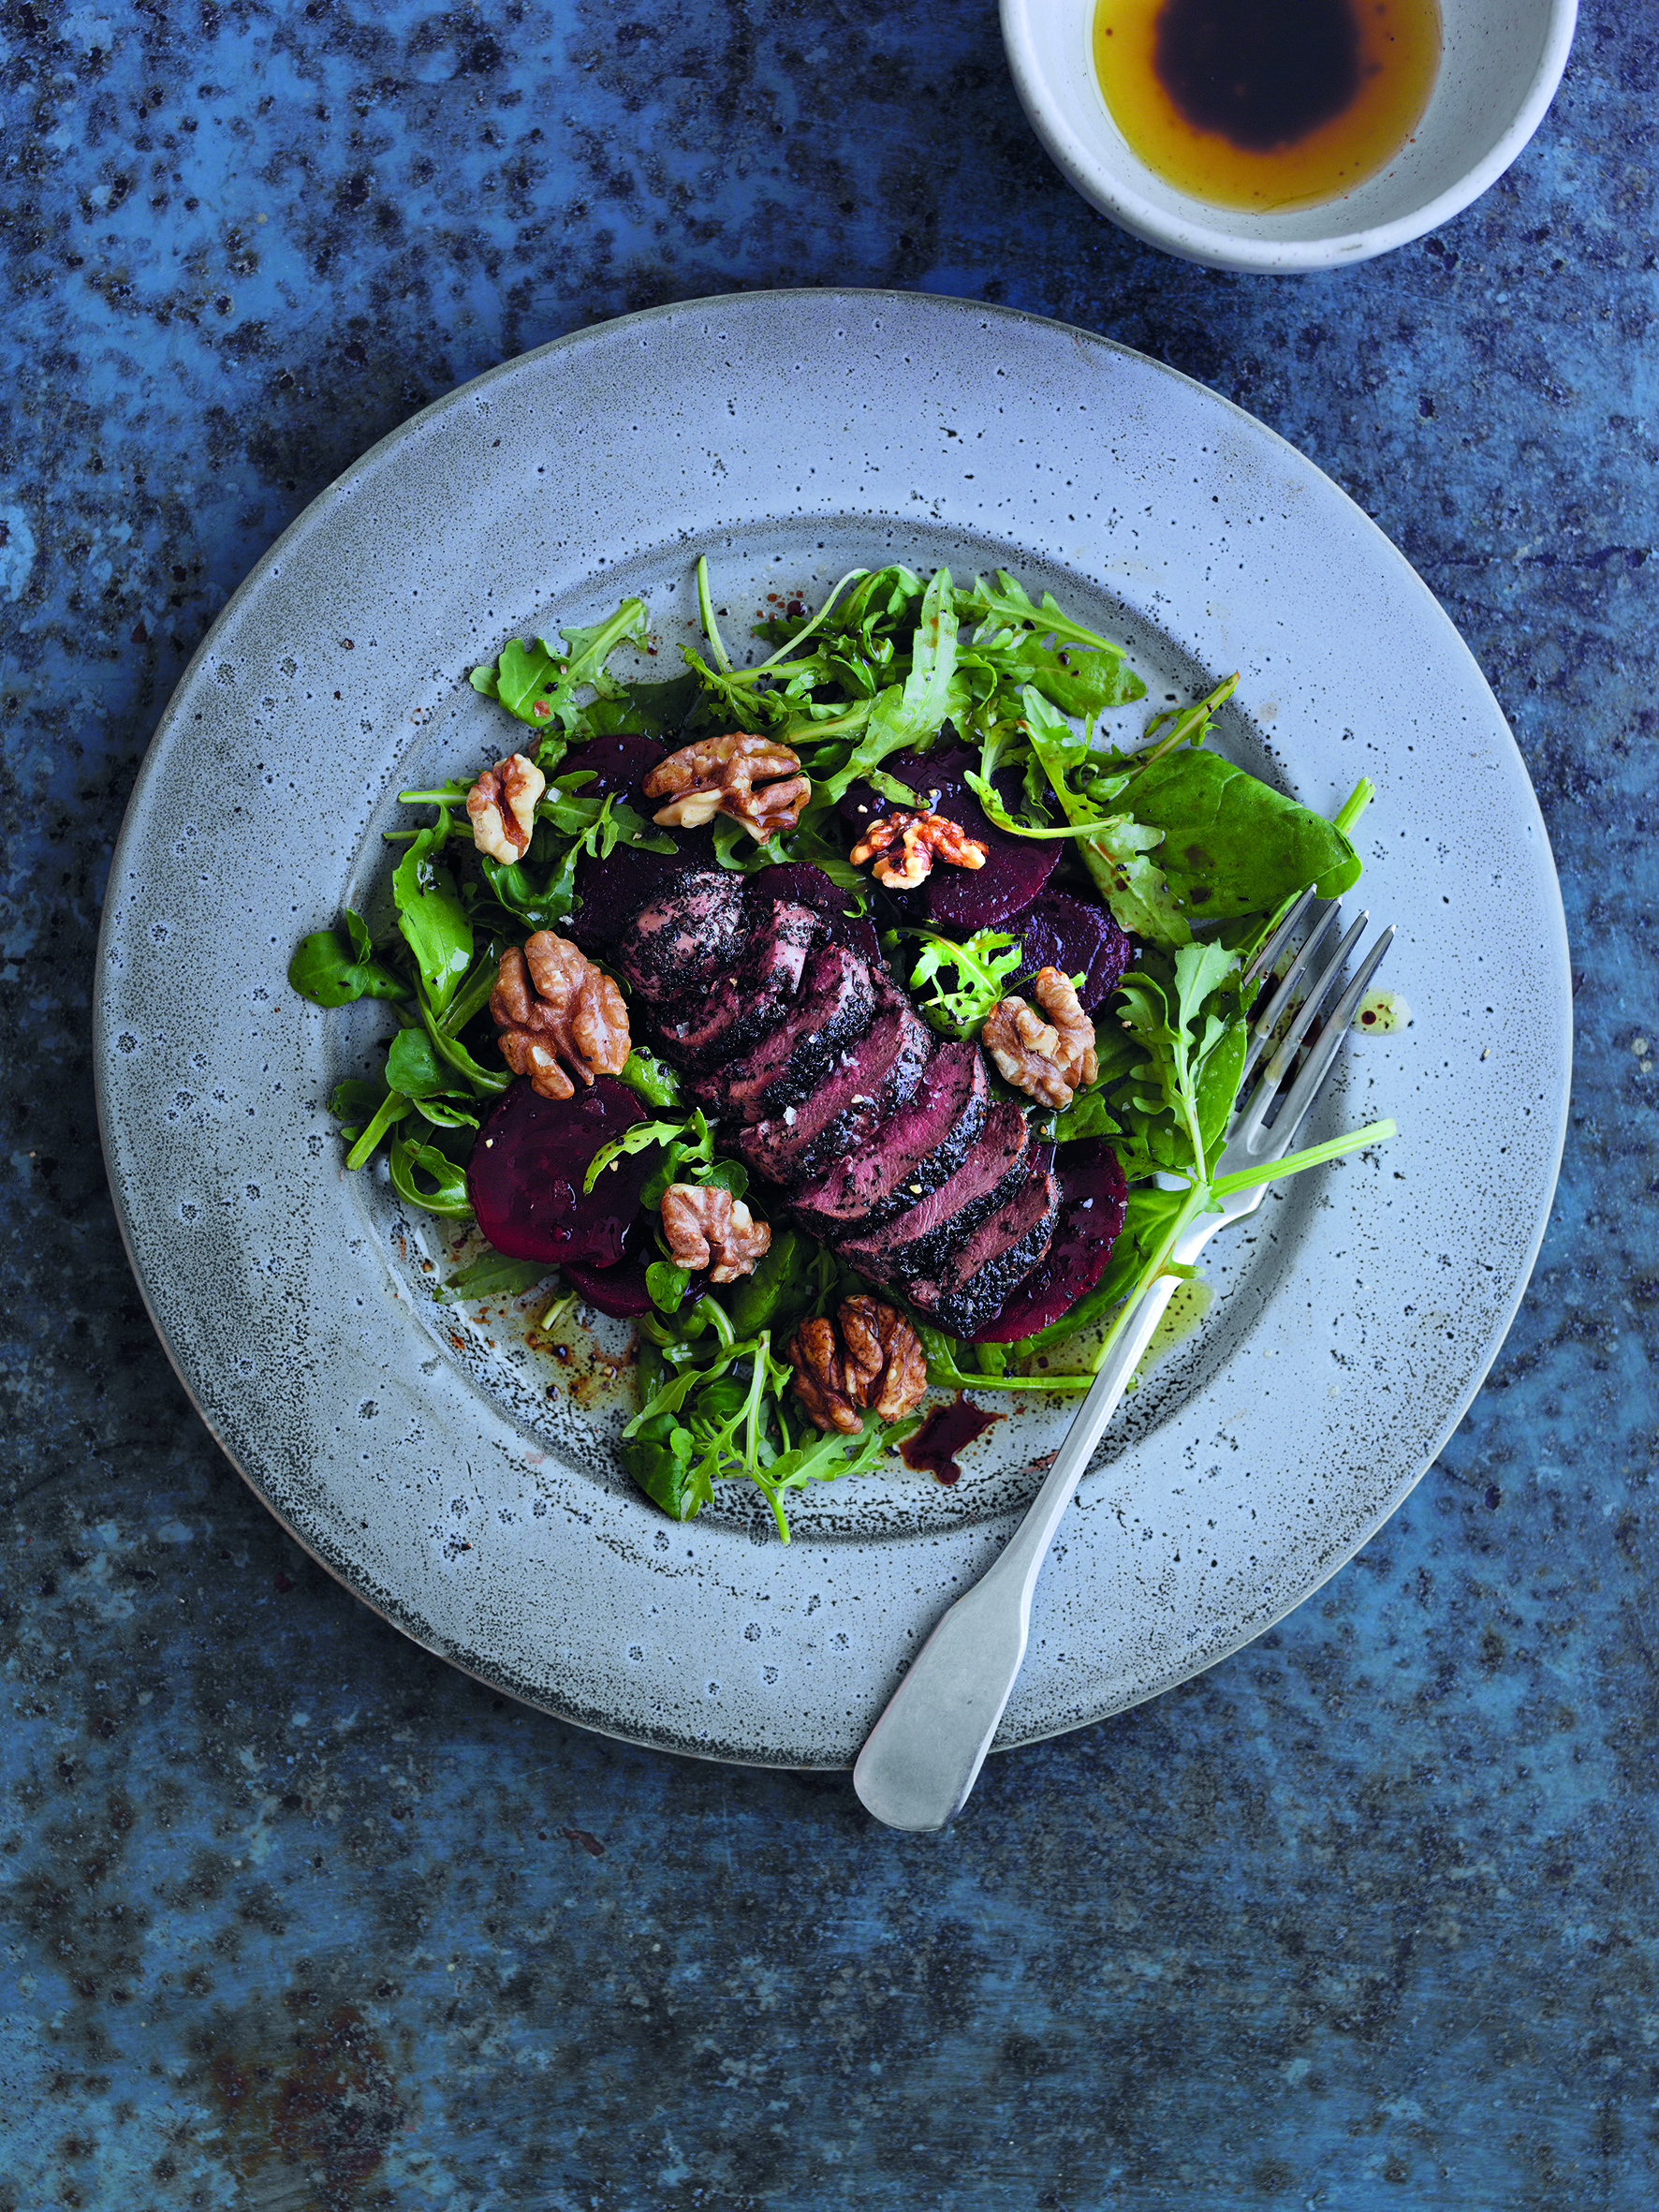 Smoky pigeon breast salad with pickled beetroot - by Nigel Barden from Jose Souto's 'Feathers – The Game Larder' (Merlin Unwin Books)photography Steve Lee